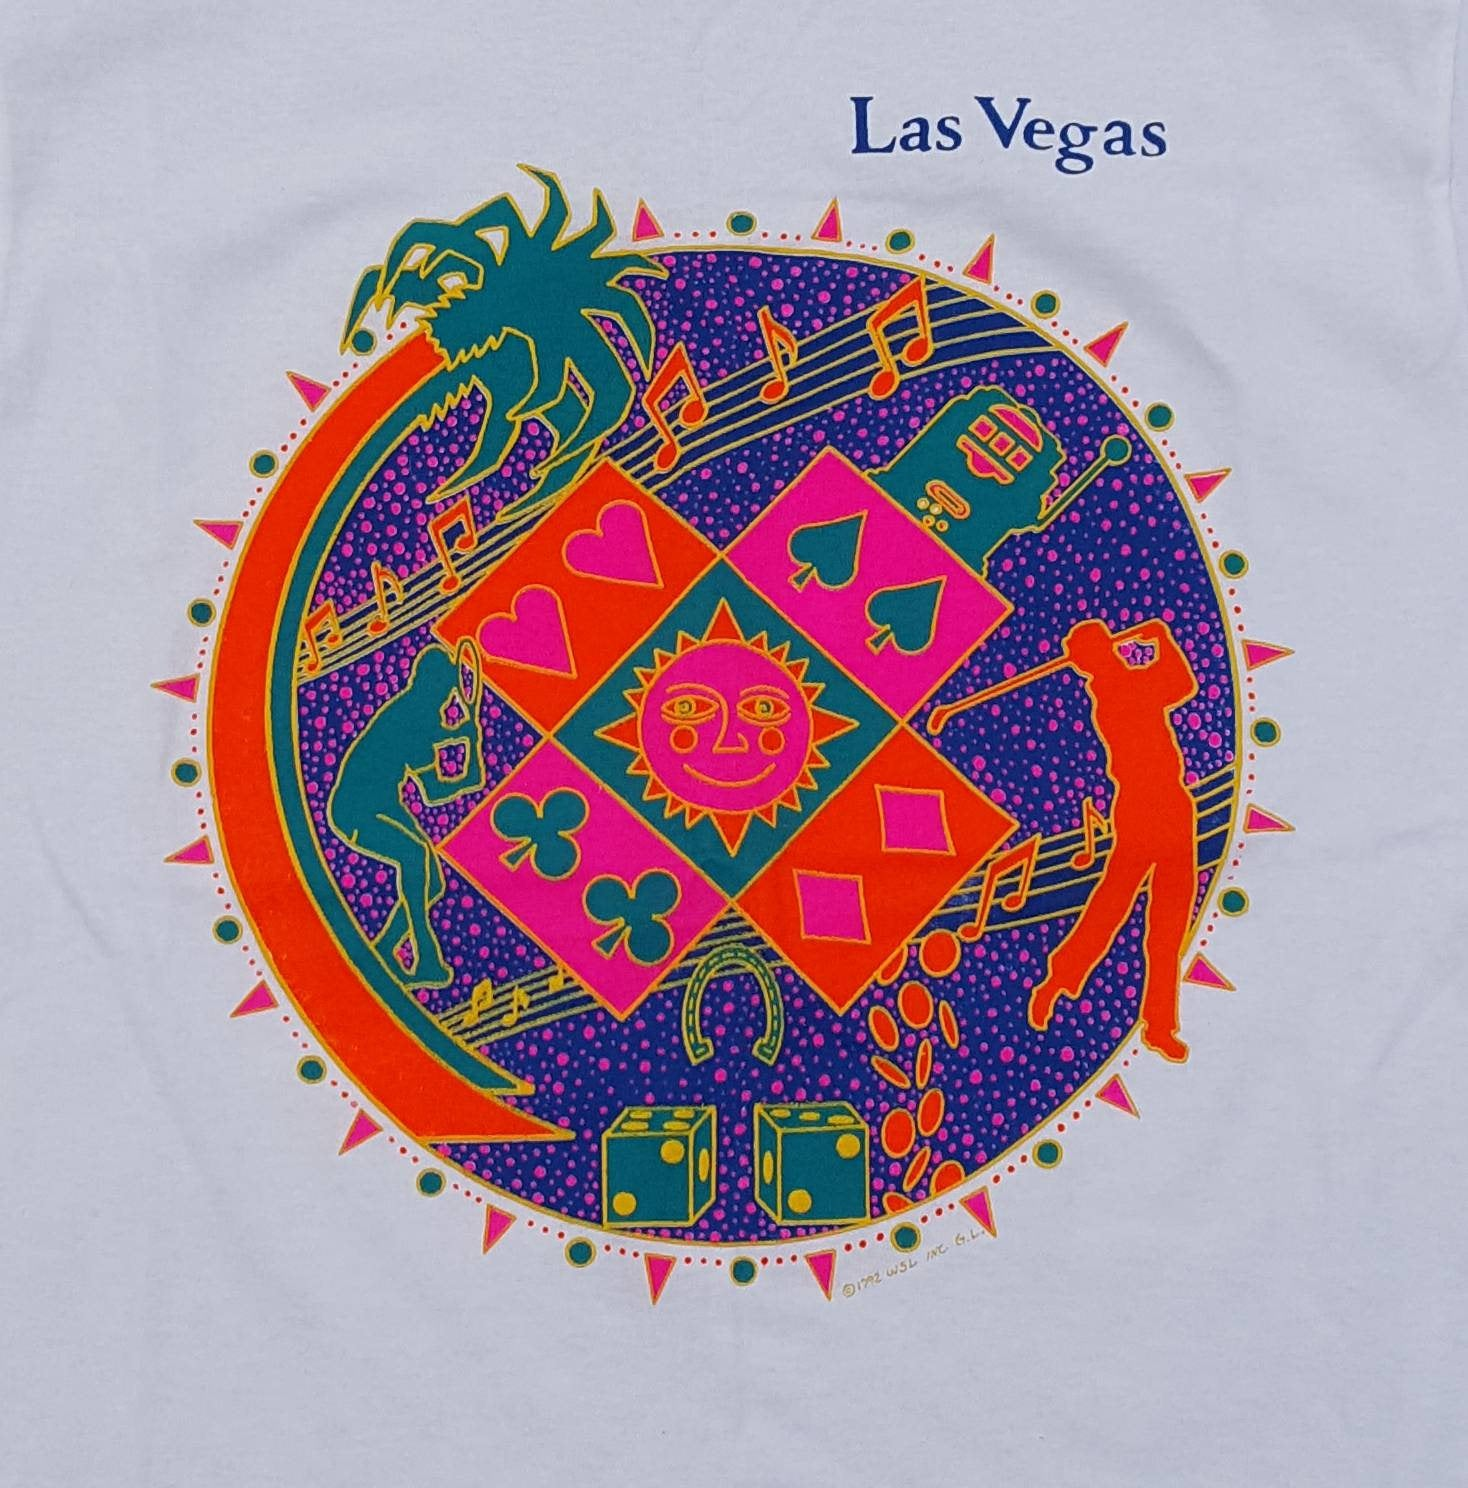 Vtg 1992 Las Vegas  tee shirt sz large casino golf location